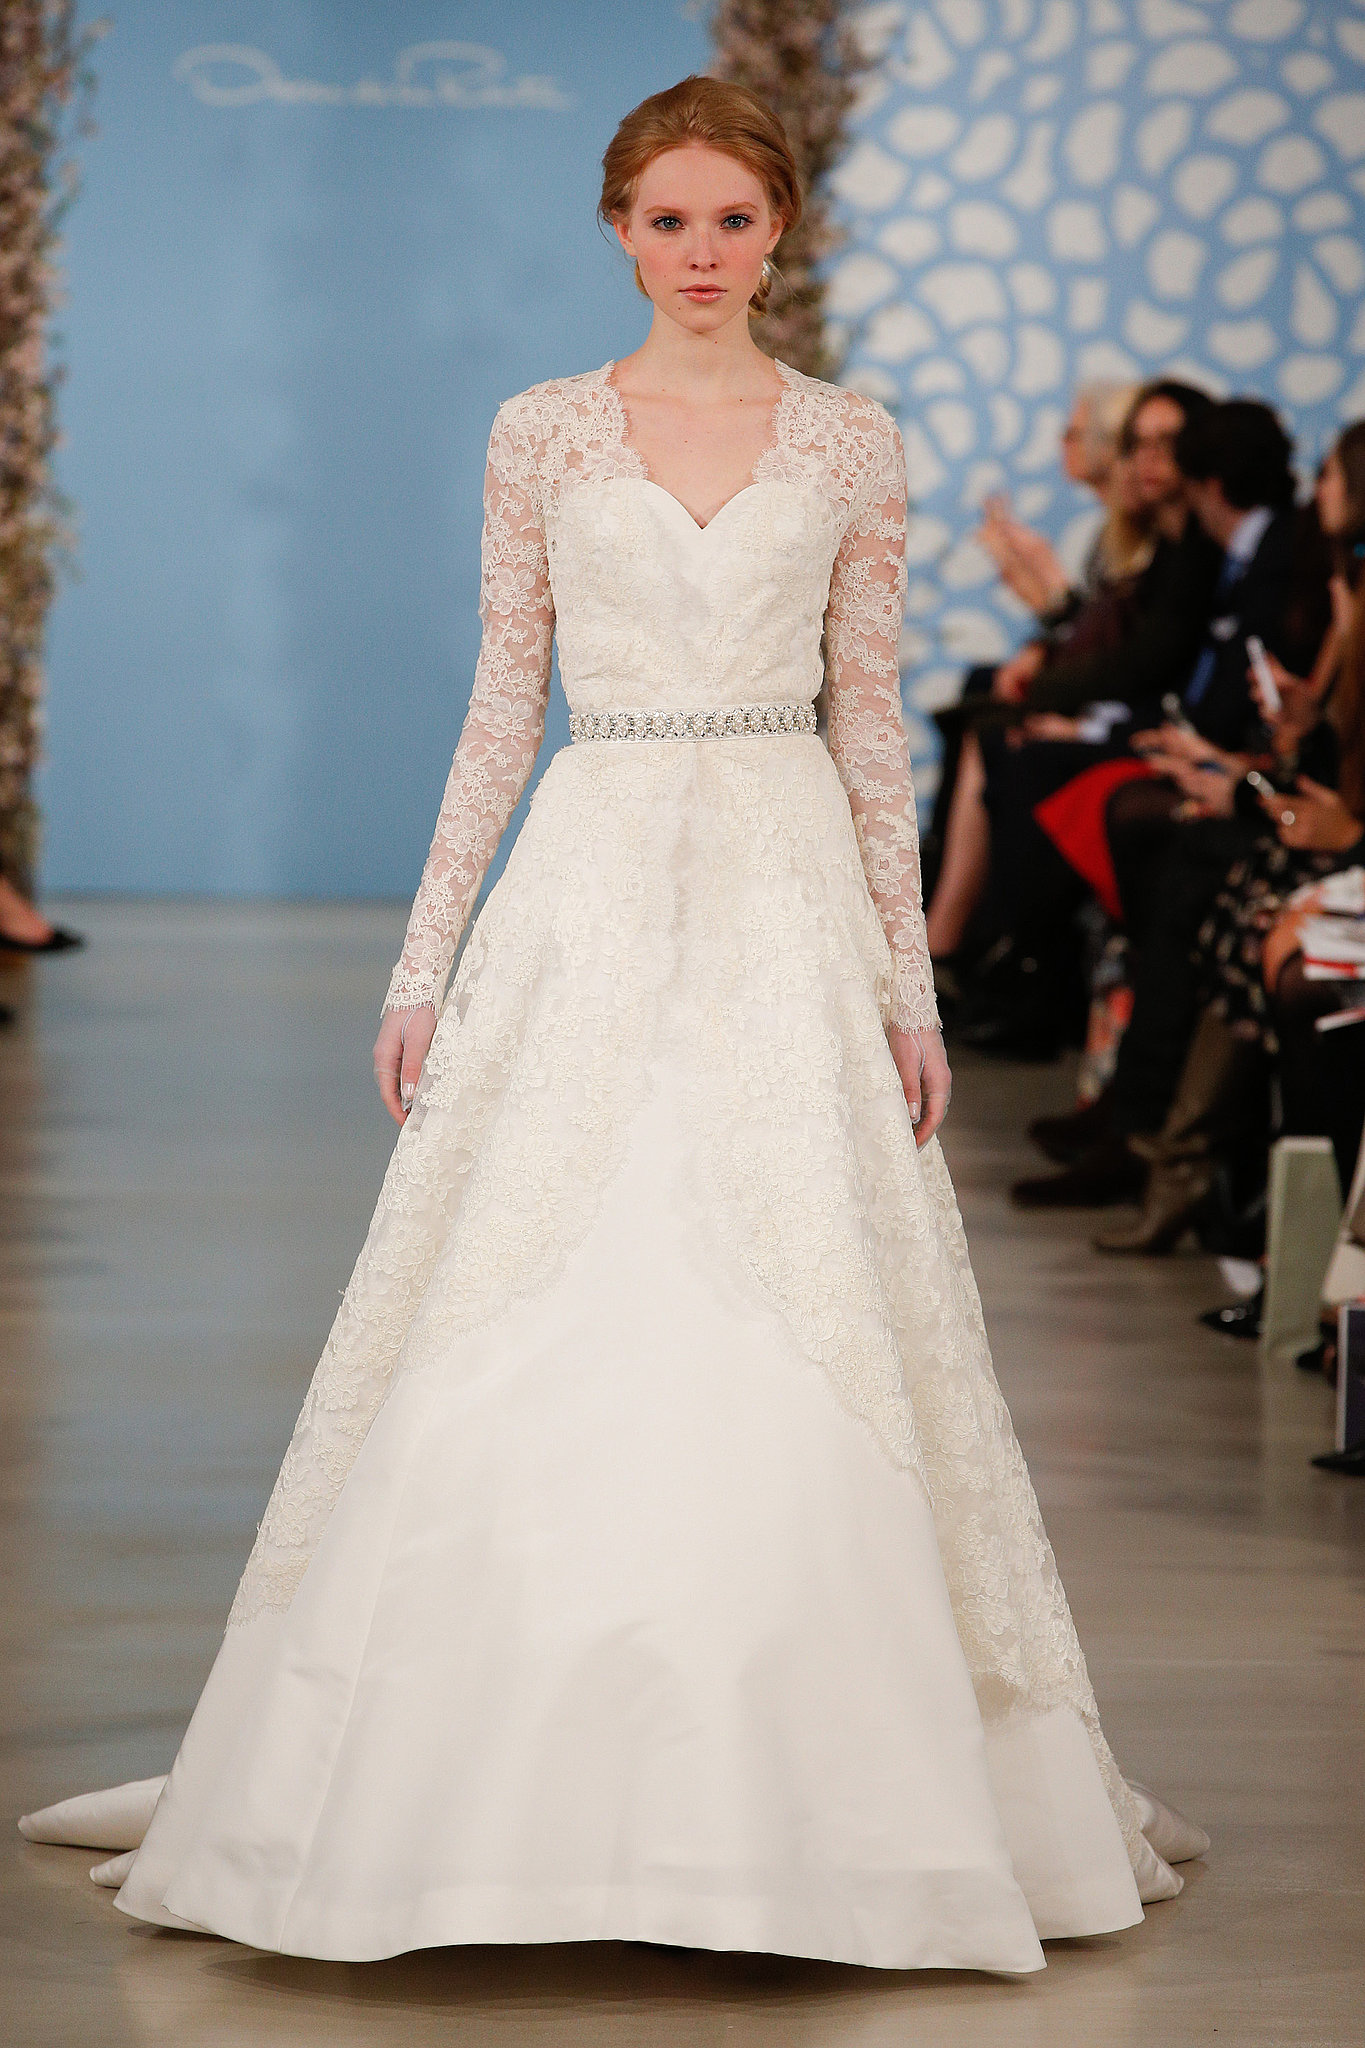 oscar-de-la-renta-wedding-dresses-image-2